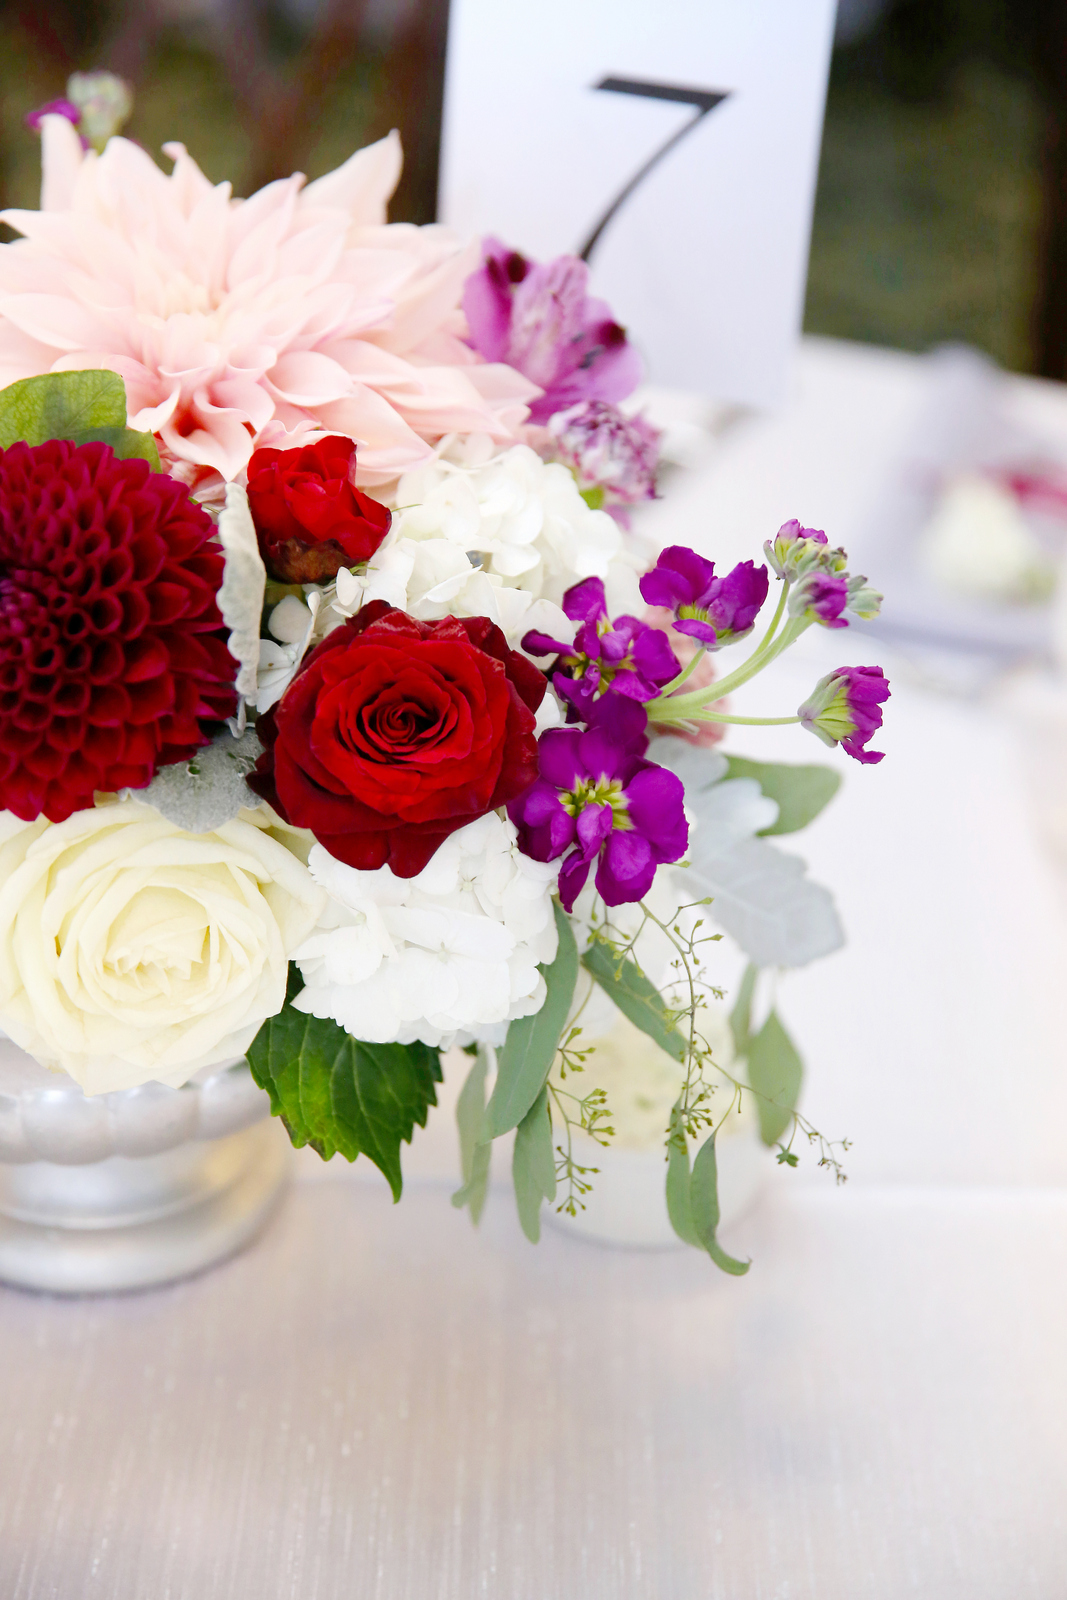 JS Weddings and Events, Grand Rapids Wedding planner and Floral Designer. An elegant and romantic summer wedding in Downtown Grand Rapids at the McKay Ballroom with Burgundy, Blush and Grey.